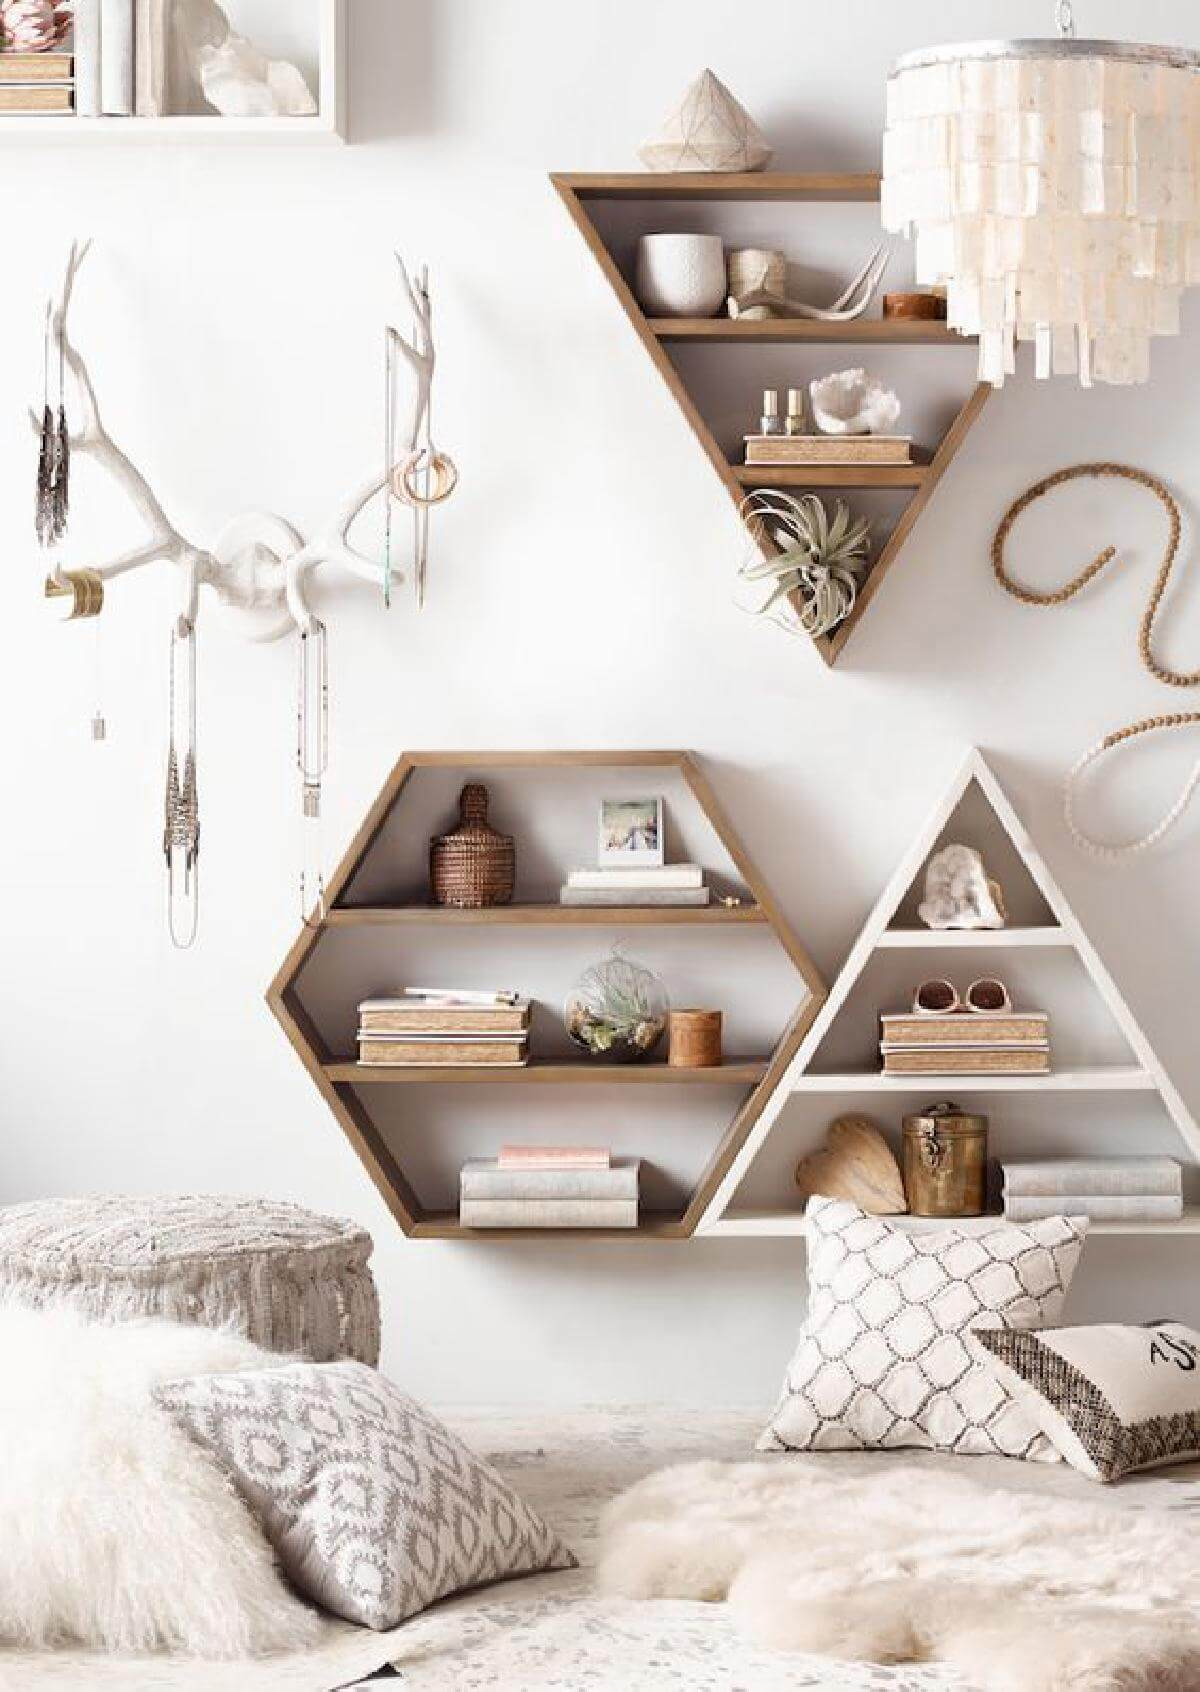 Set Of Wooden Rustic Geometric Wall Shelves